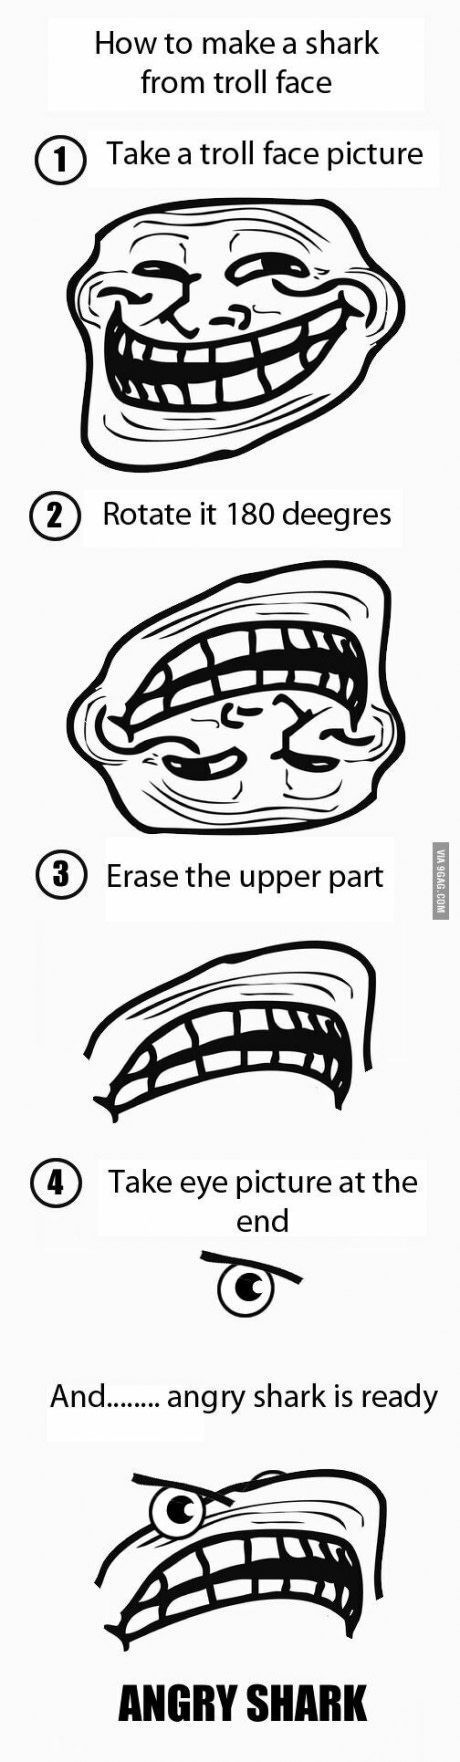 How to make a shark from troll face